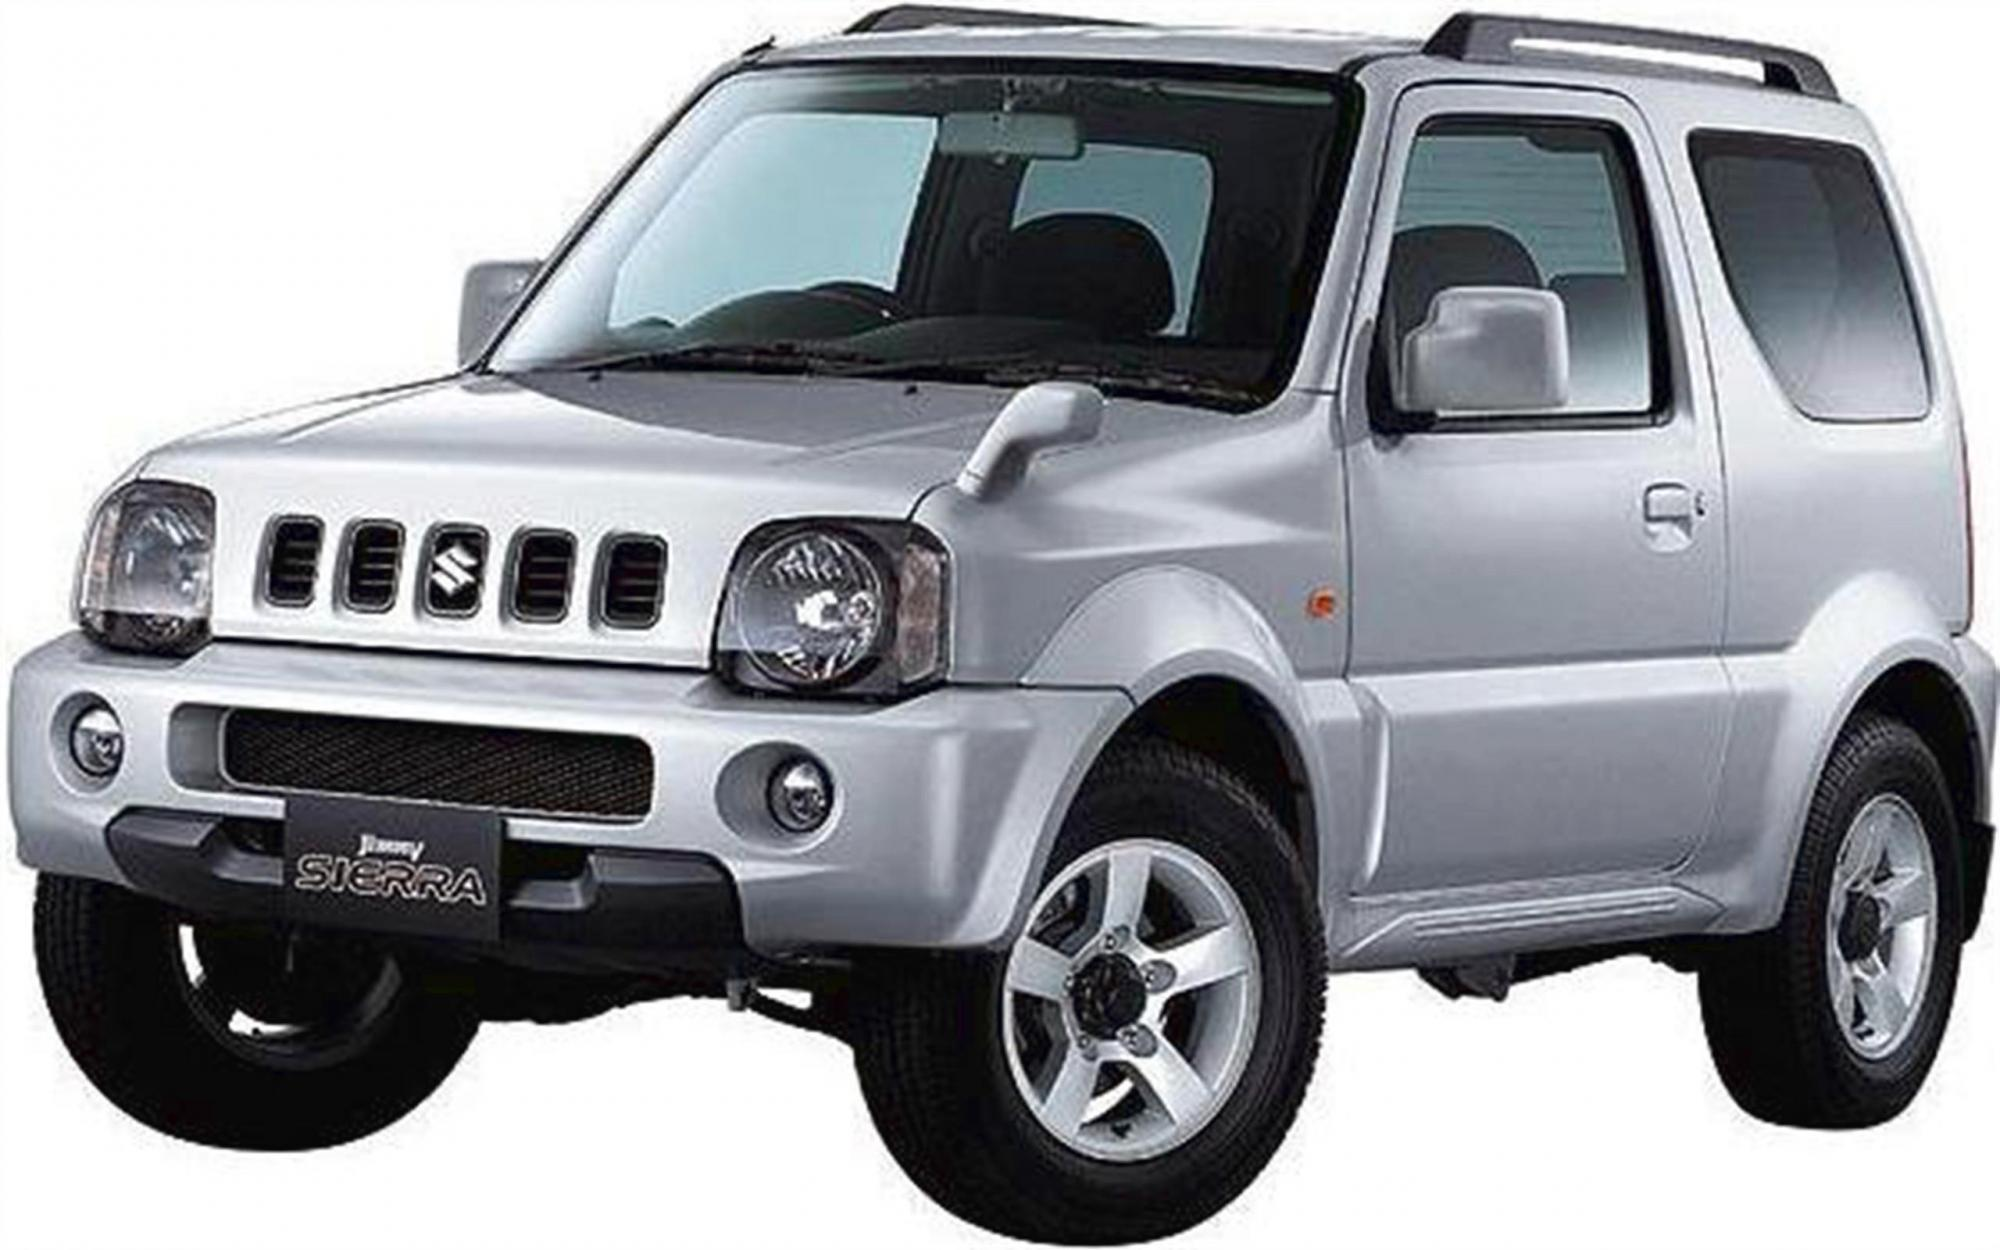 comparison suzuki jimny sierra 2012 vs jeep renegade sport 2015 suv drive. Black Bedroom Furniture Sets. Home Design Ideas